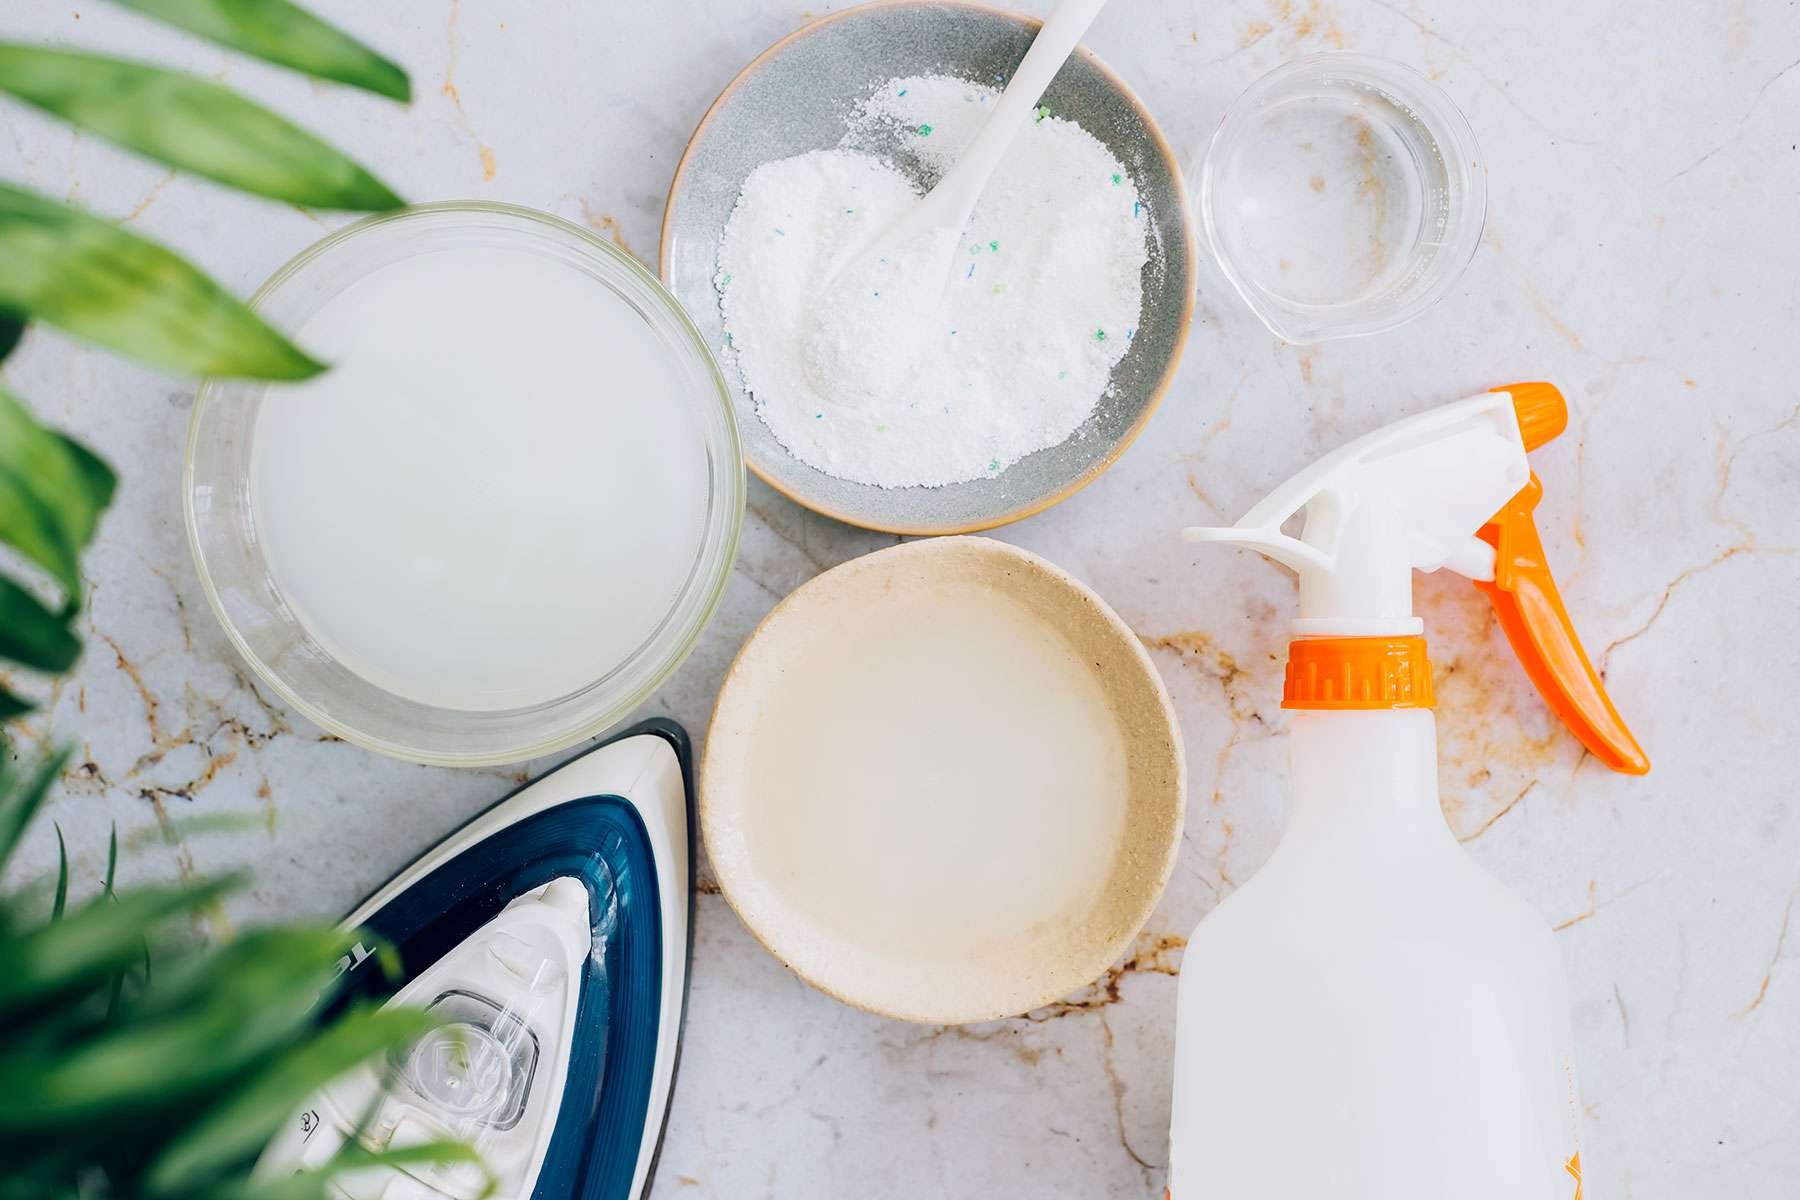 ingredients to clean cotton clothing